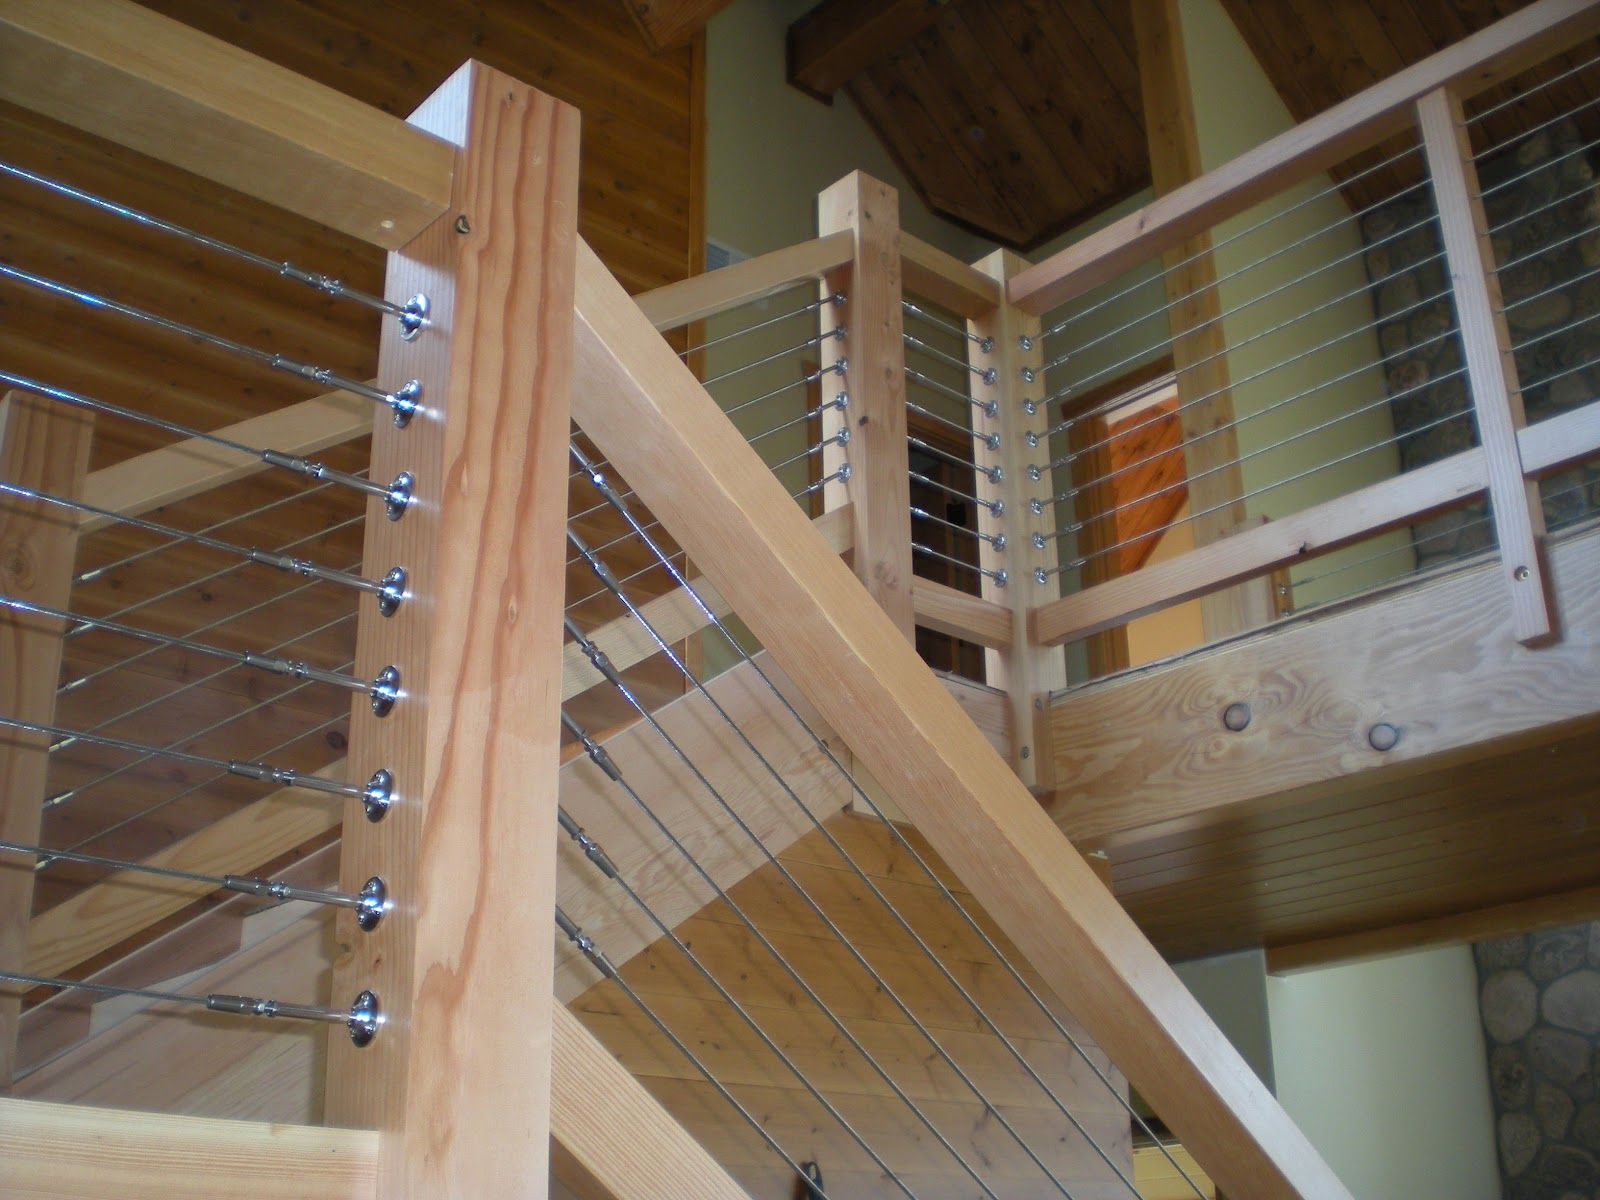 Projects, progress, thoughts, stuff | Home / Stairs | Pinterest